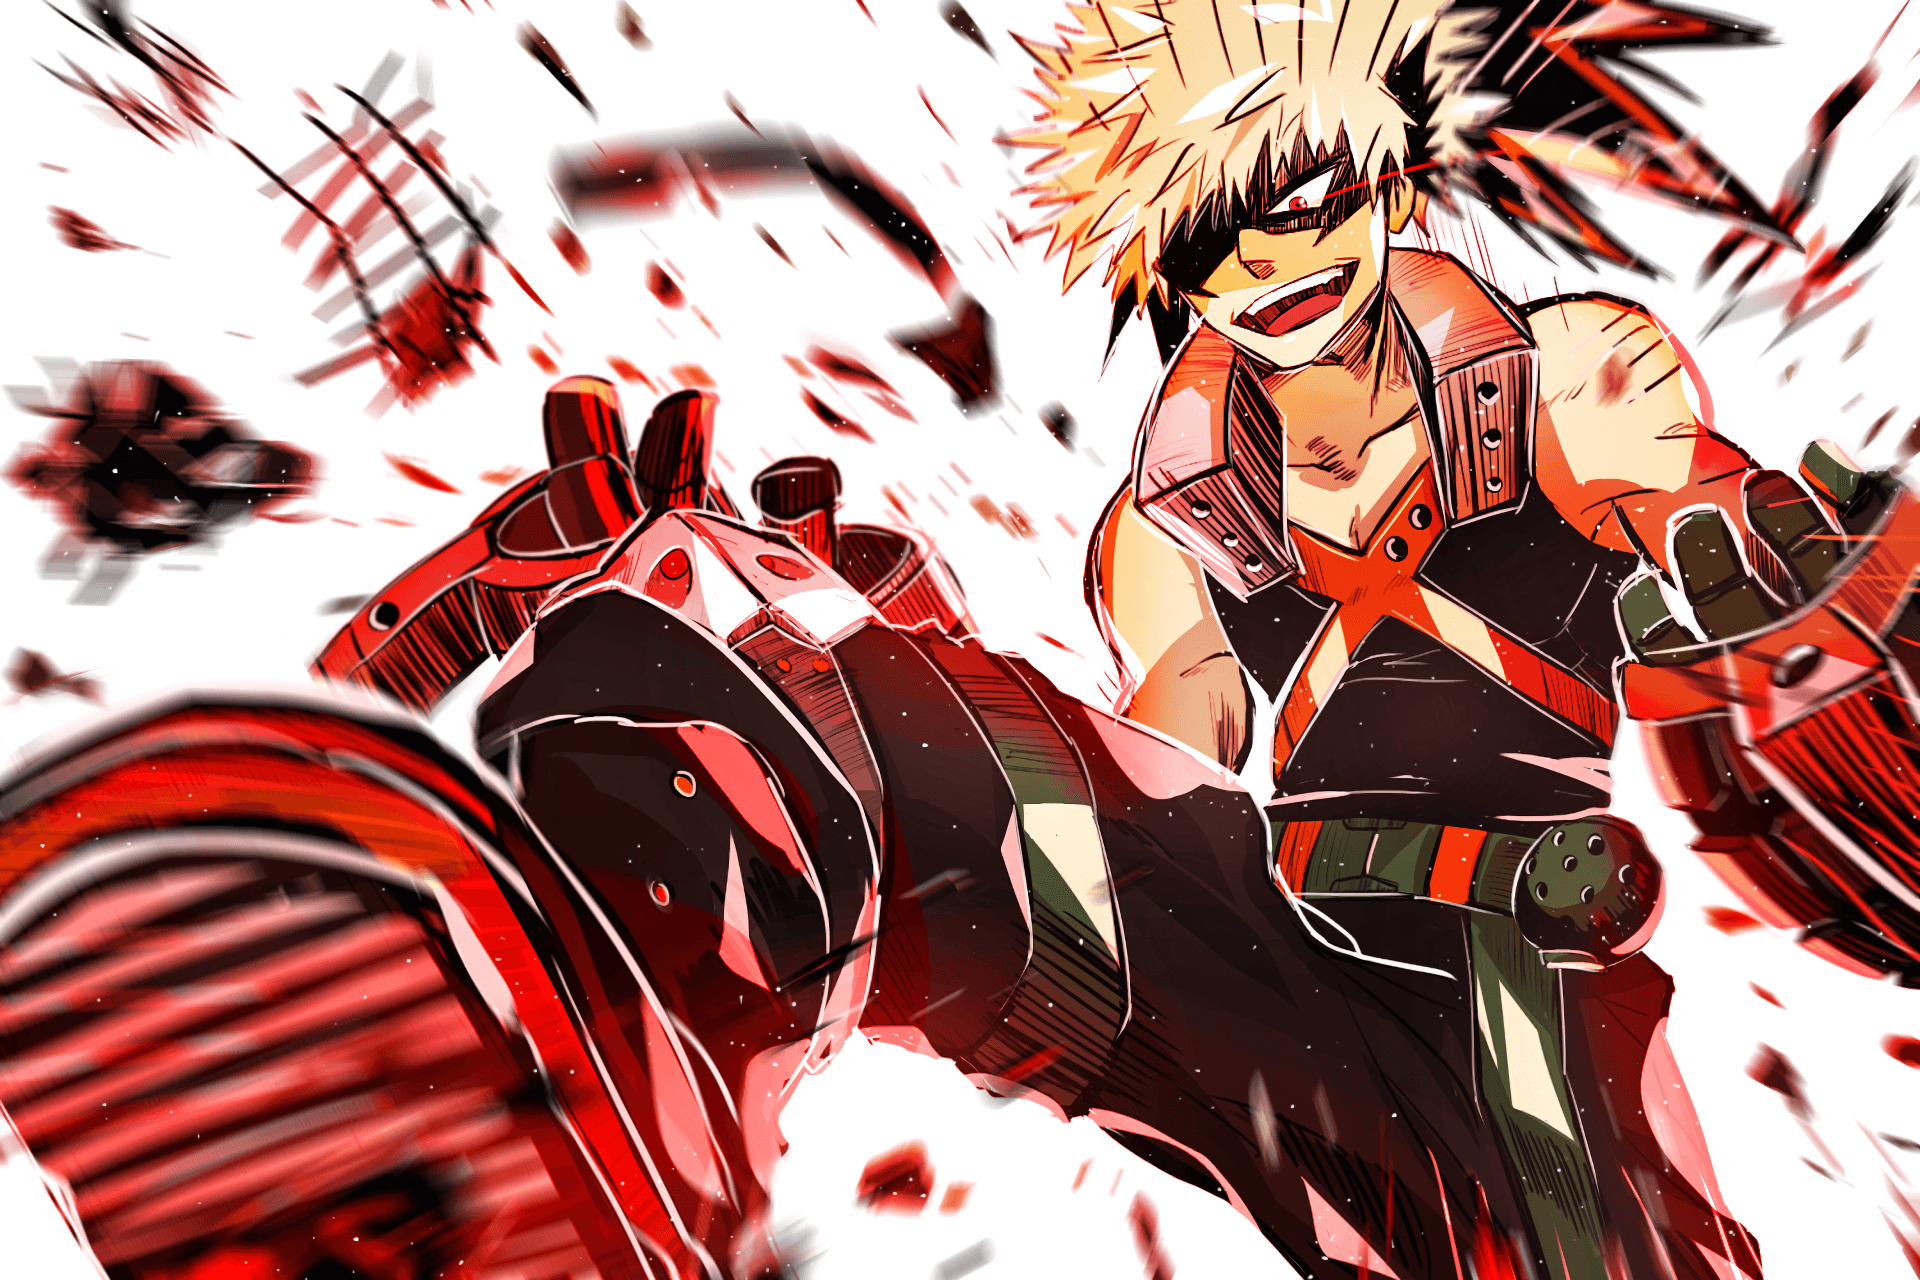 48 my hero academia wallpapers, background,photos and images of my hero academia for desktop windows 10, apple iphone and android mobile. My Hero Academia Wallpapers - Wallpaper Cave